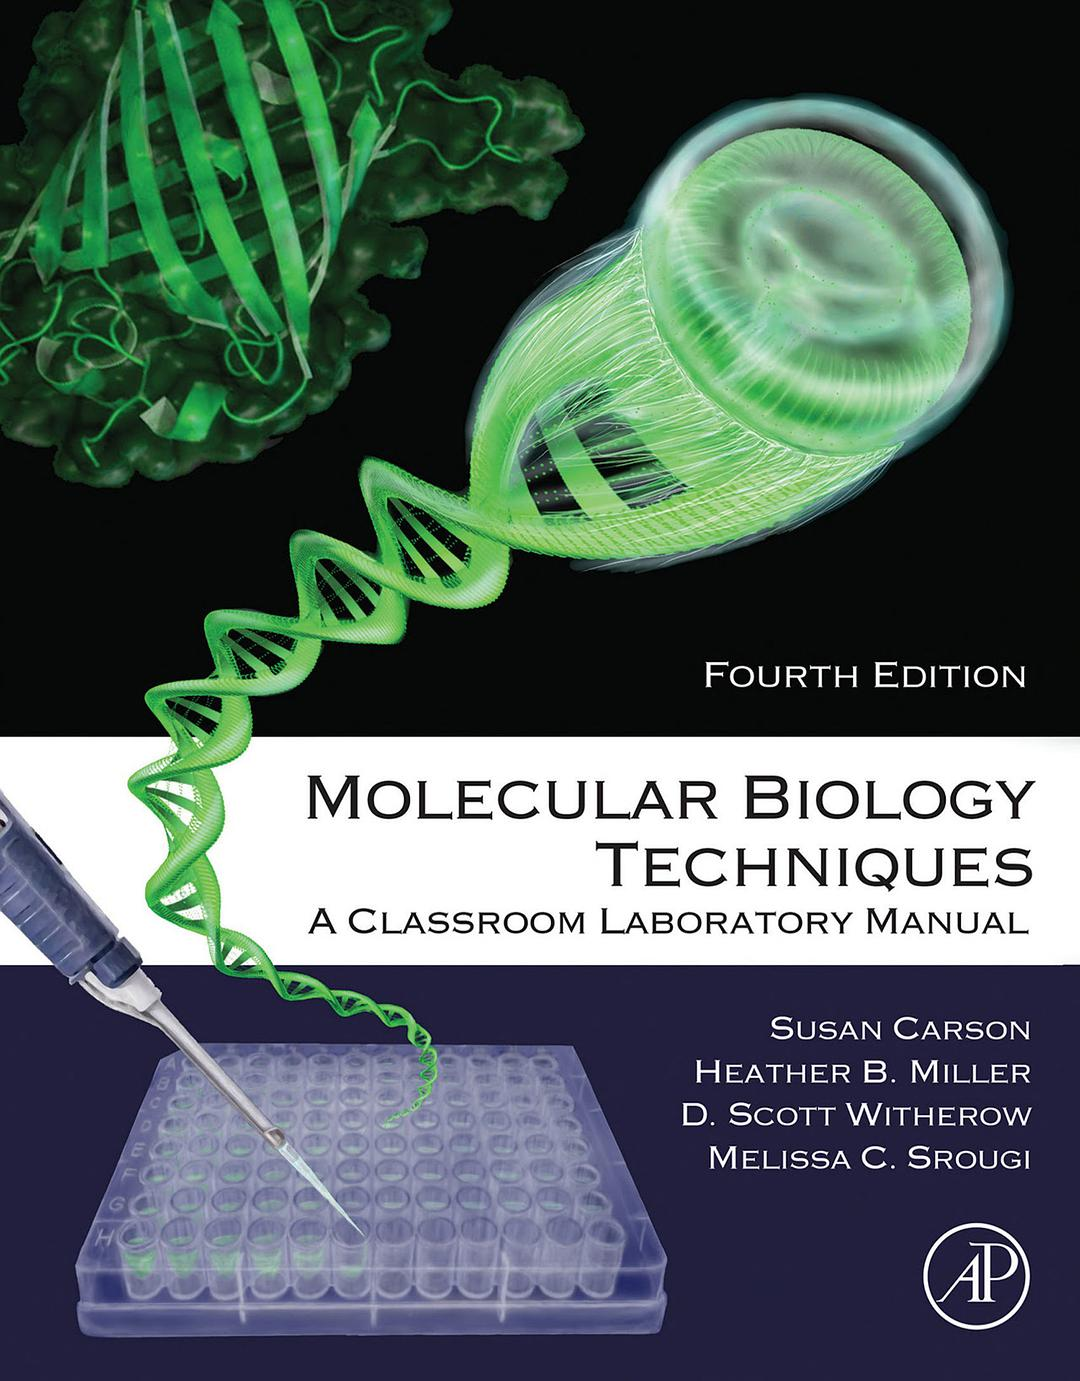 Molecular Biology Techniques, 4th Edition